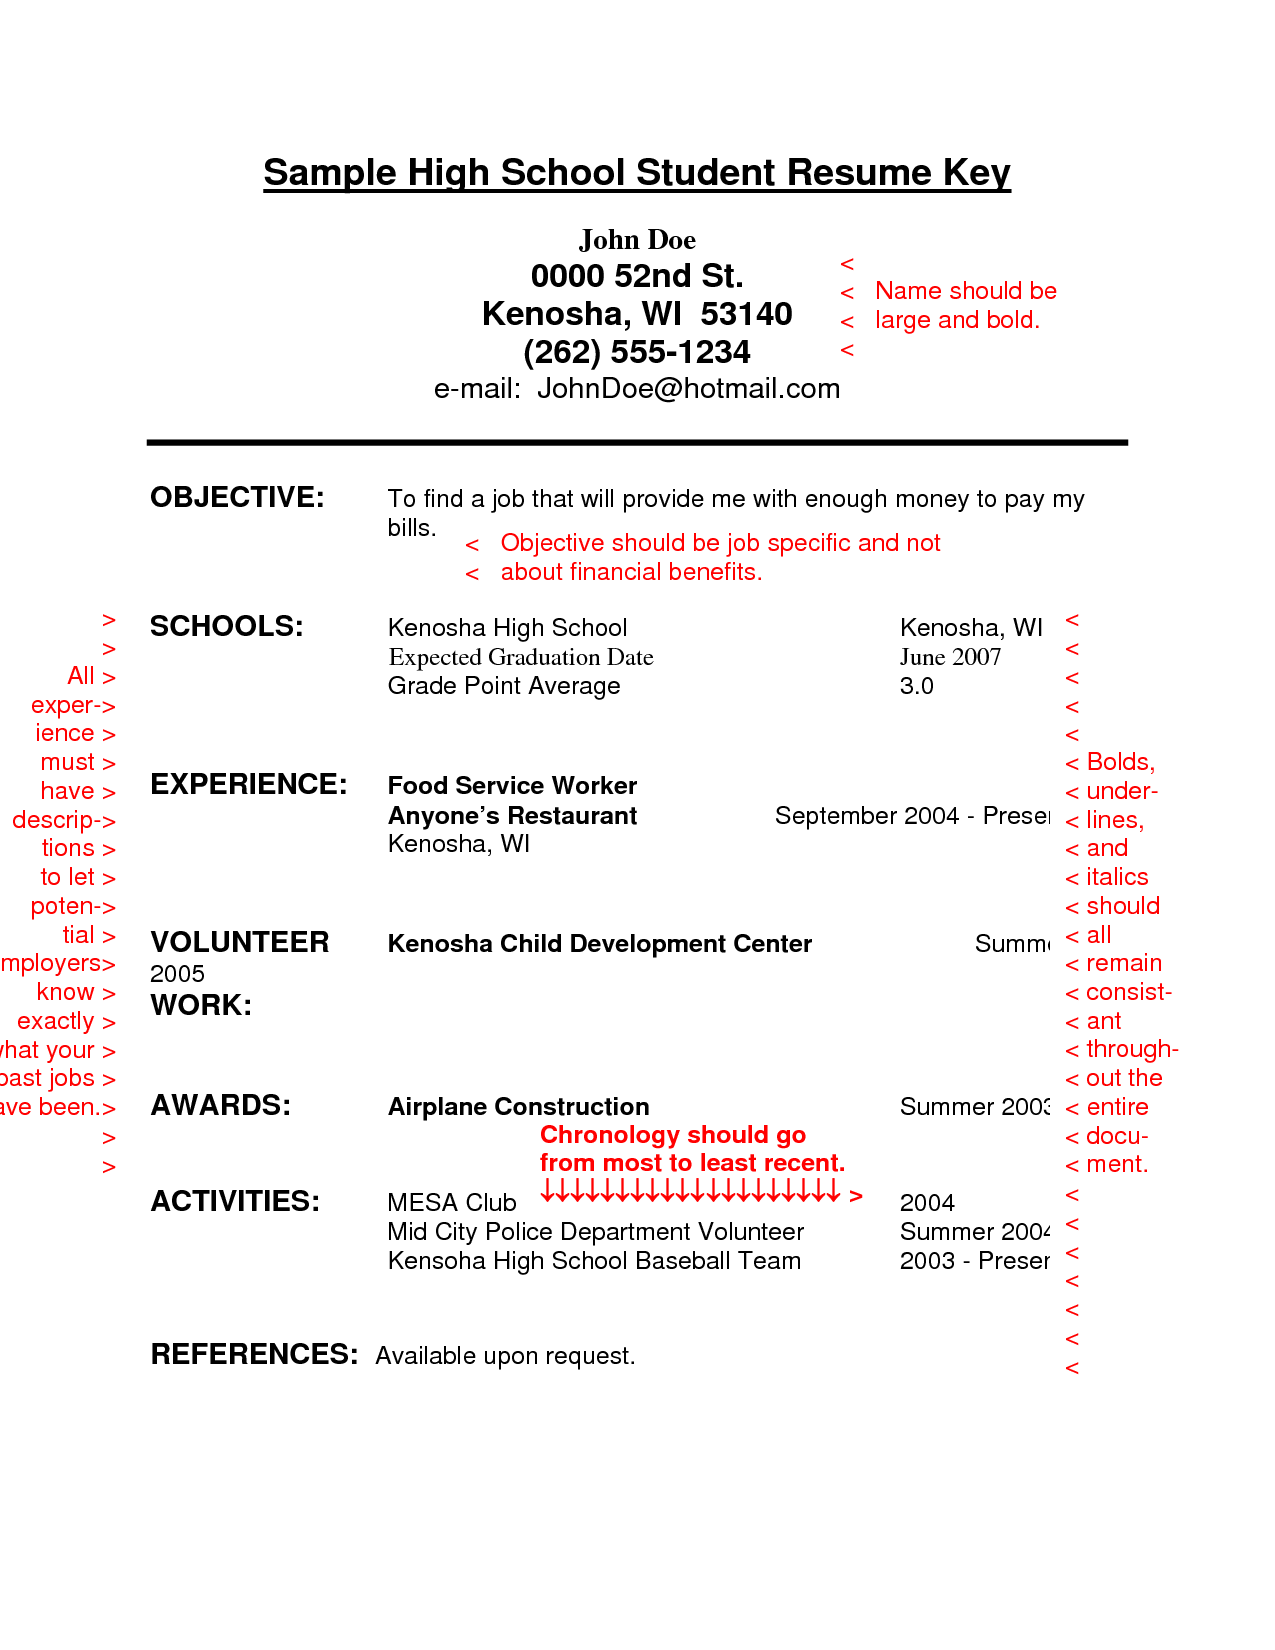 Free Student Resume Templates Alluring Resume Sample For High School Students With No Experience  Http